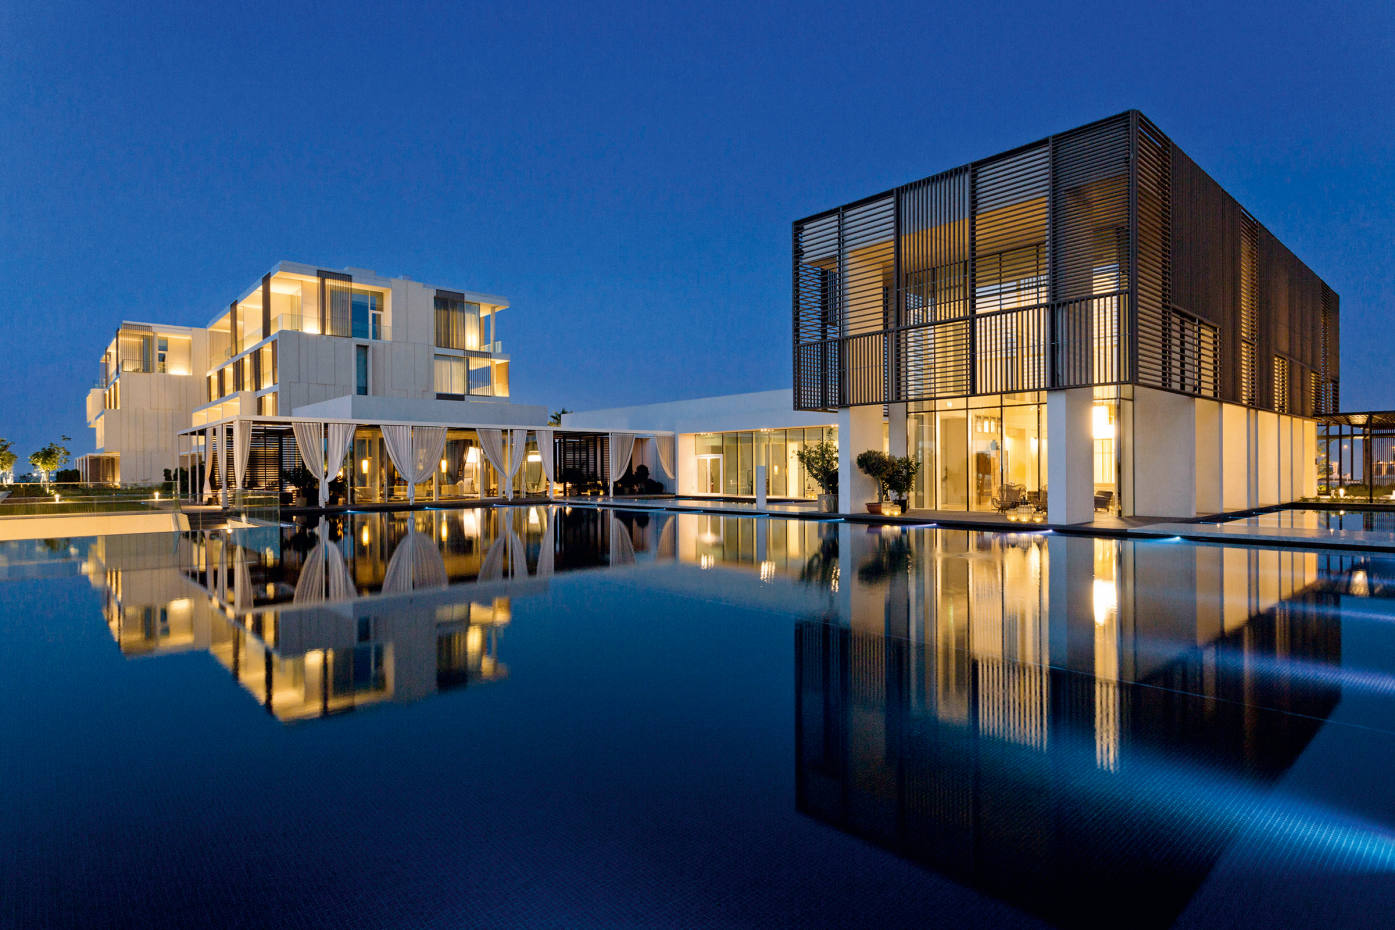 The rooms, suites and villas at Oberoi Beach Resort, Al Zorah, were designed by Piero Lissoni